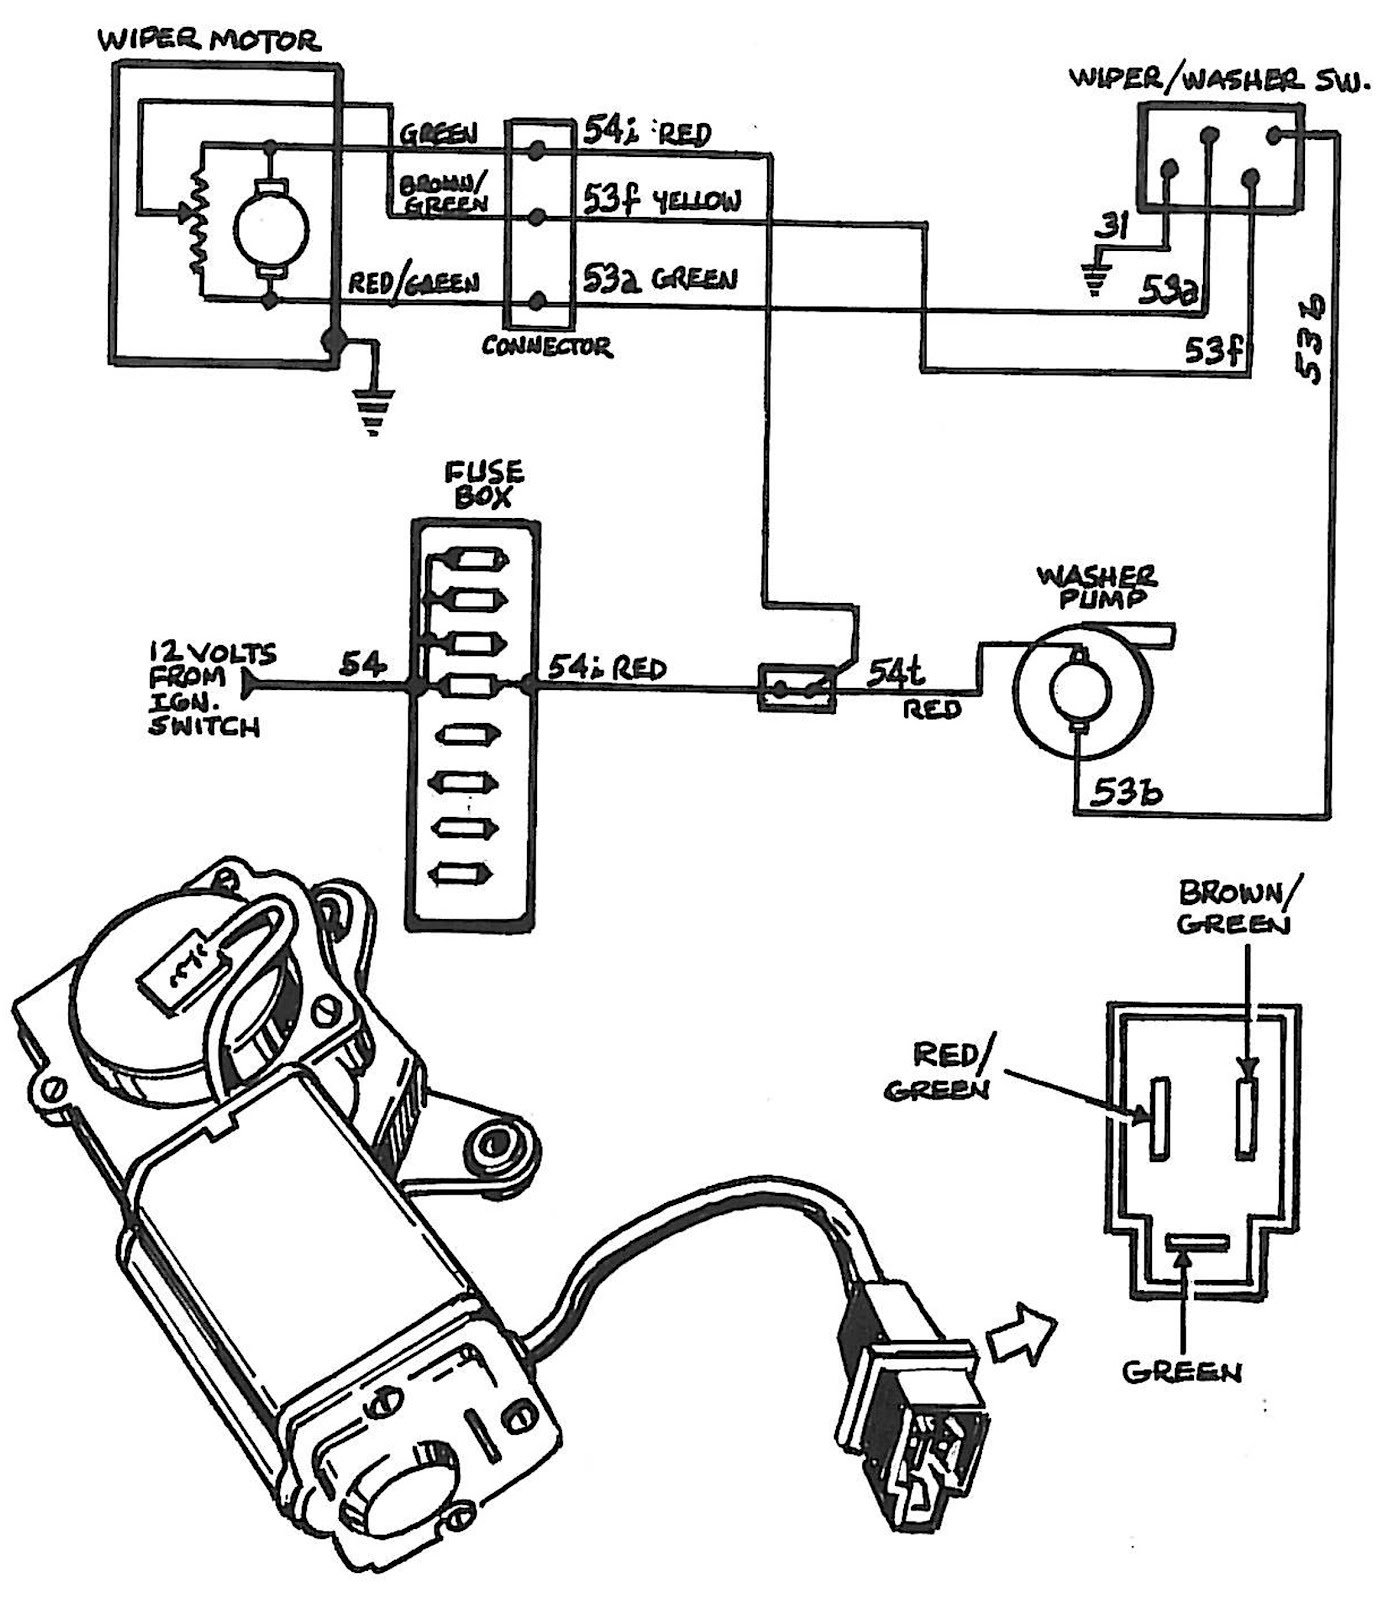 chevy windshield wiper motor wiring diagram CgTTPww s motogurumag com i chevy windshield wiper m universal wiper motor wiring diagram at bayanpartner.co